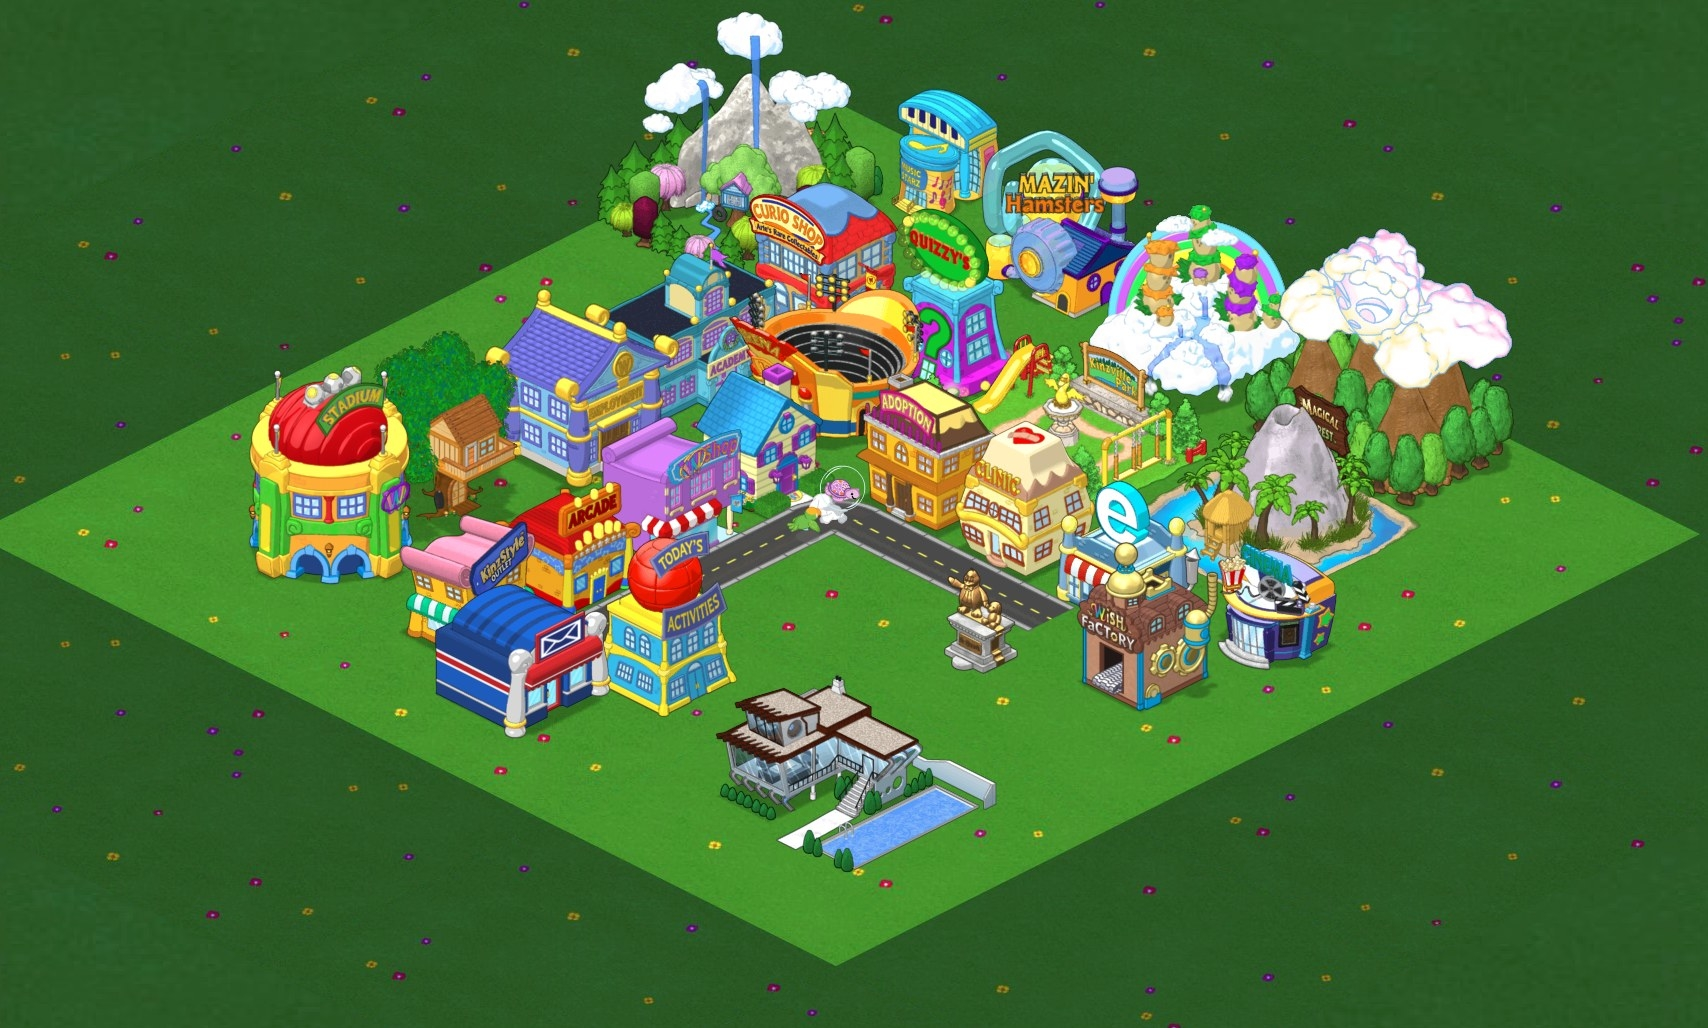 An above shot of Webkinz World, with various buildings